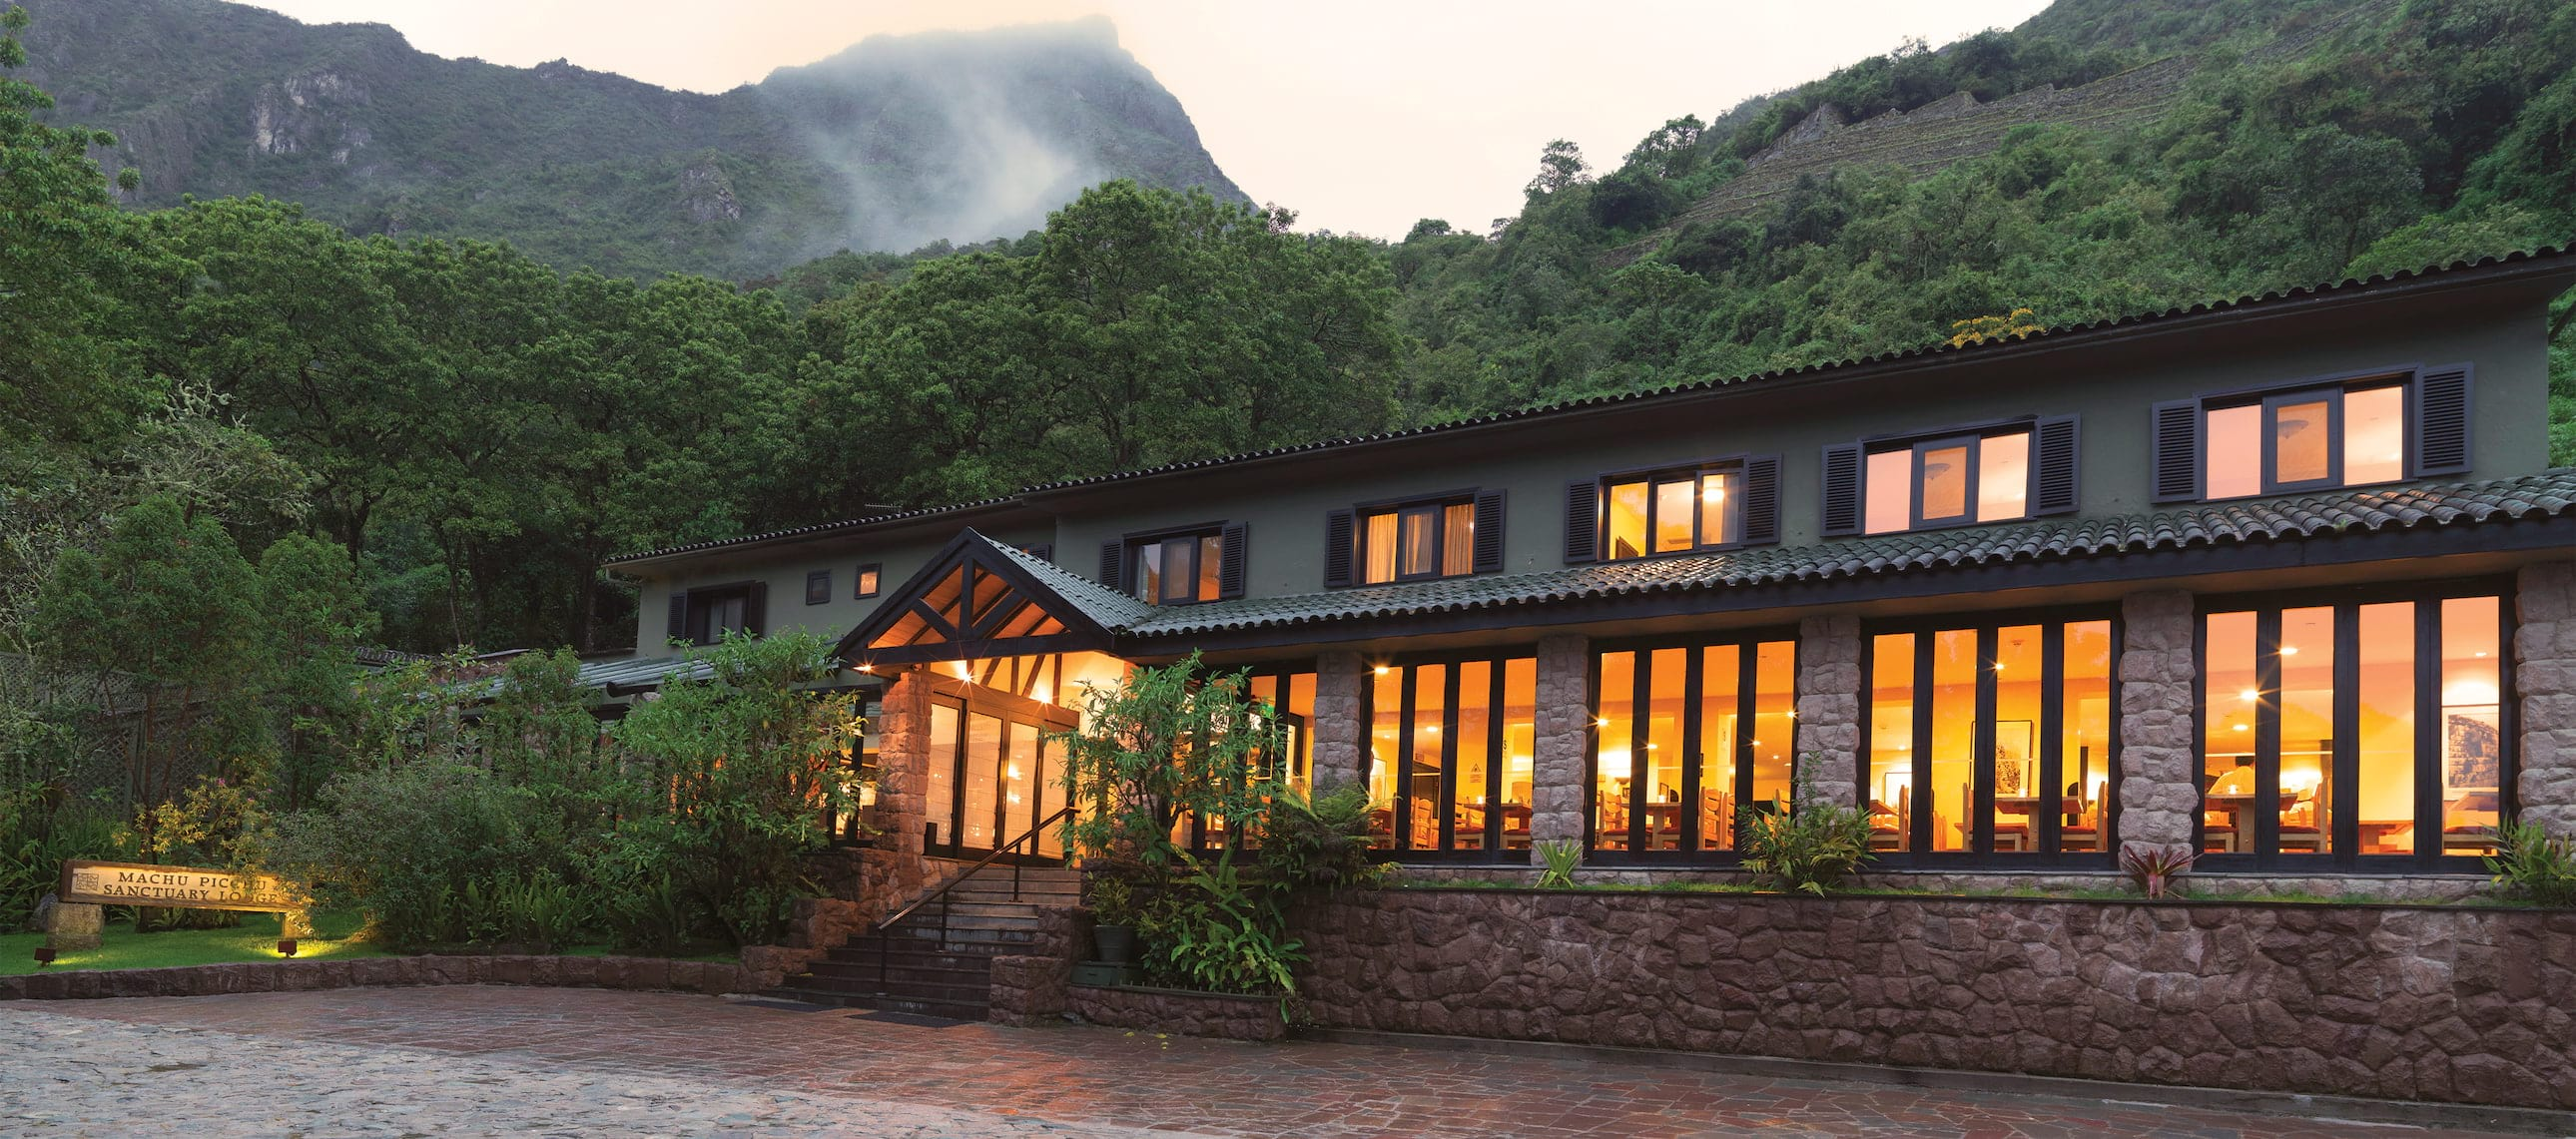 Belmond Sanctuary Lodge Machu Picchu